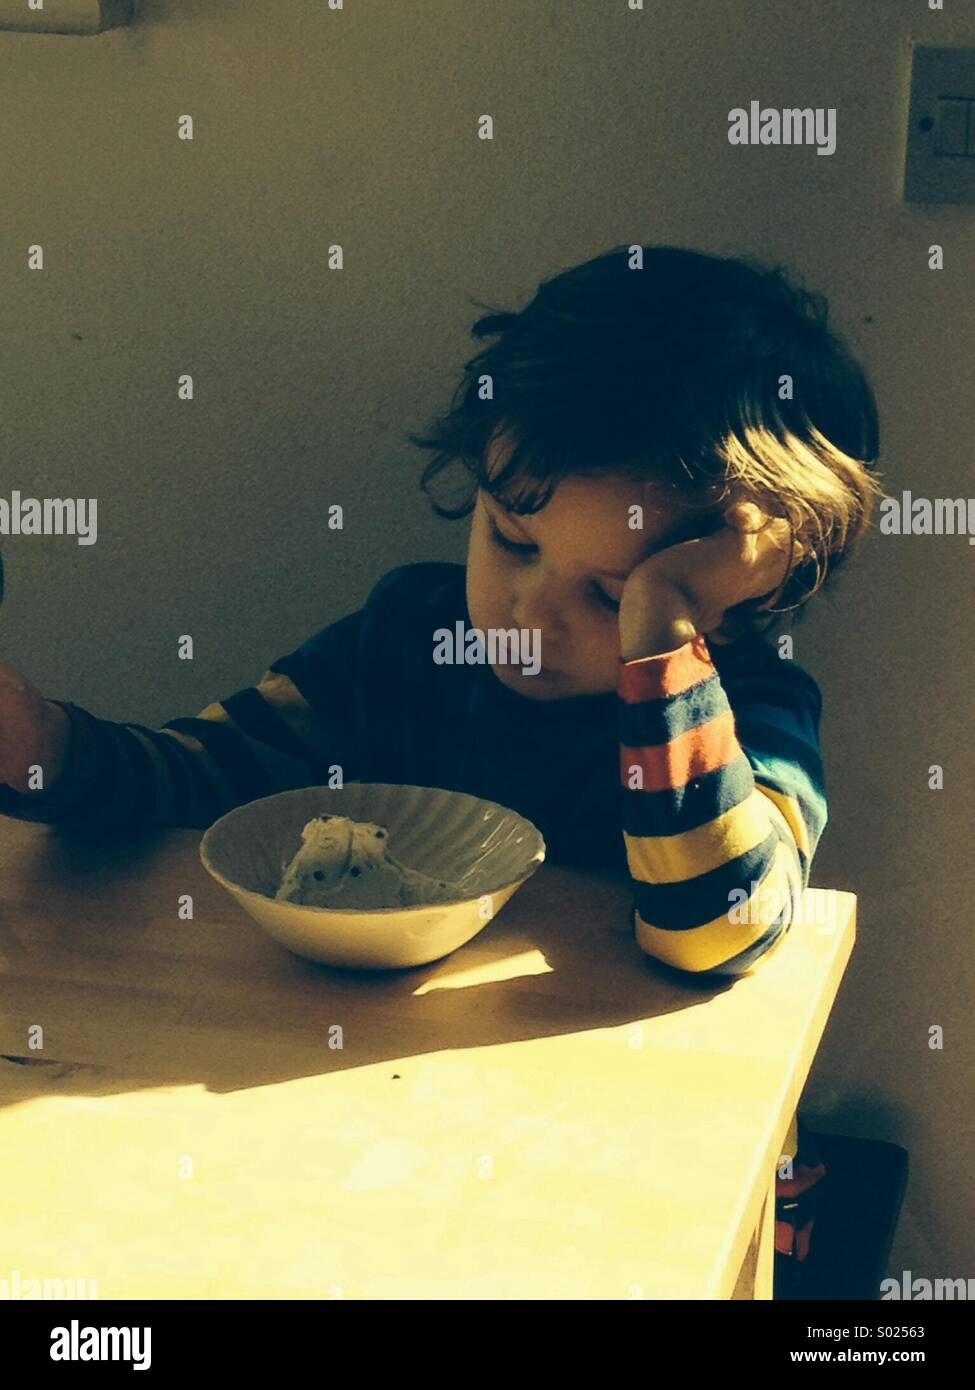 Boy eating ice cream in sunbeam with stripe top. - Stock Image